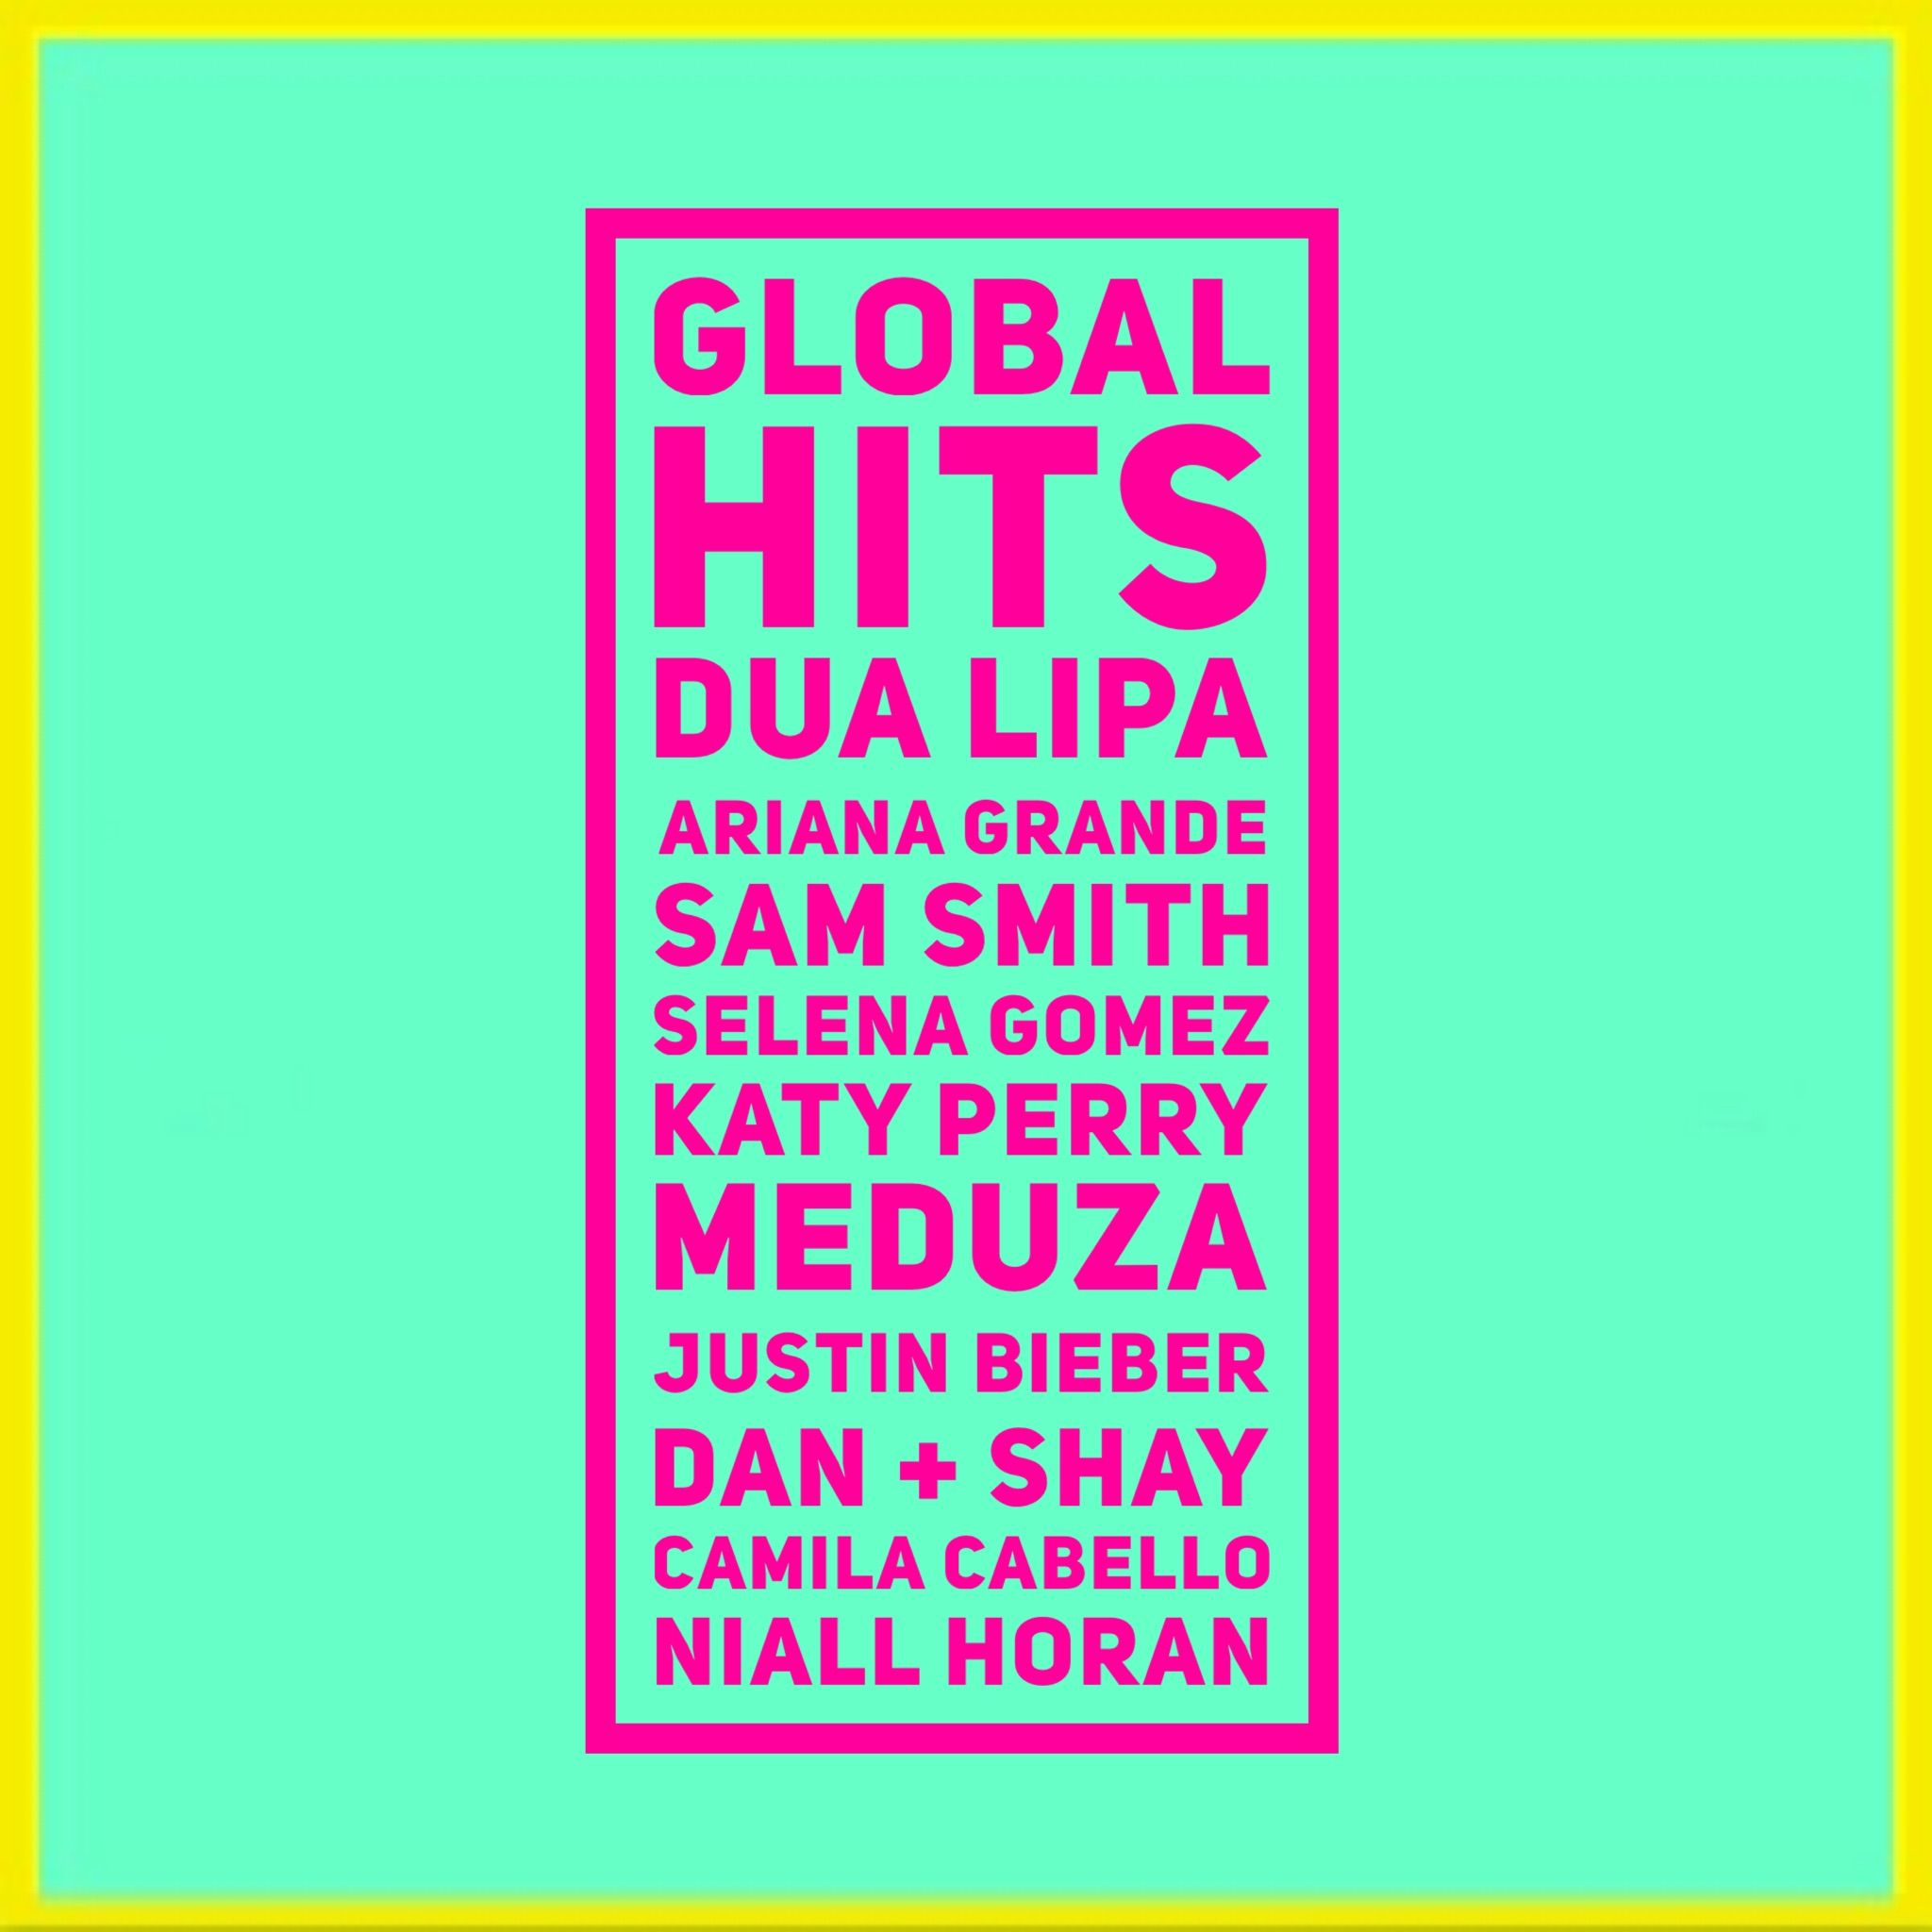 Top Global Hits 2019 Radio ft. Dua Lipa Nicki Minaj Ariana